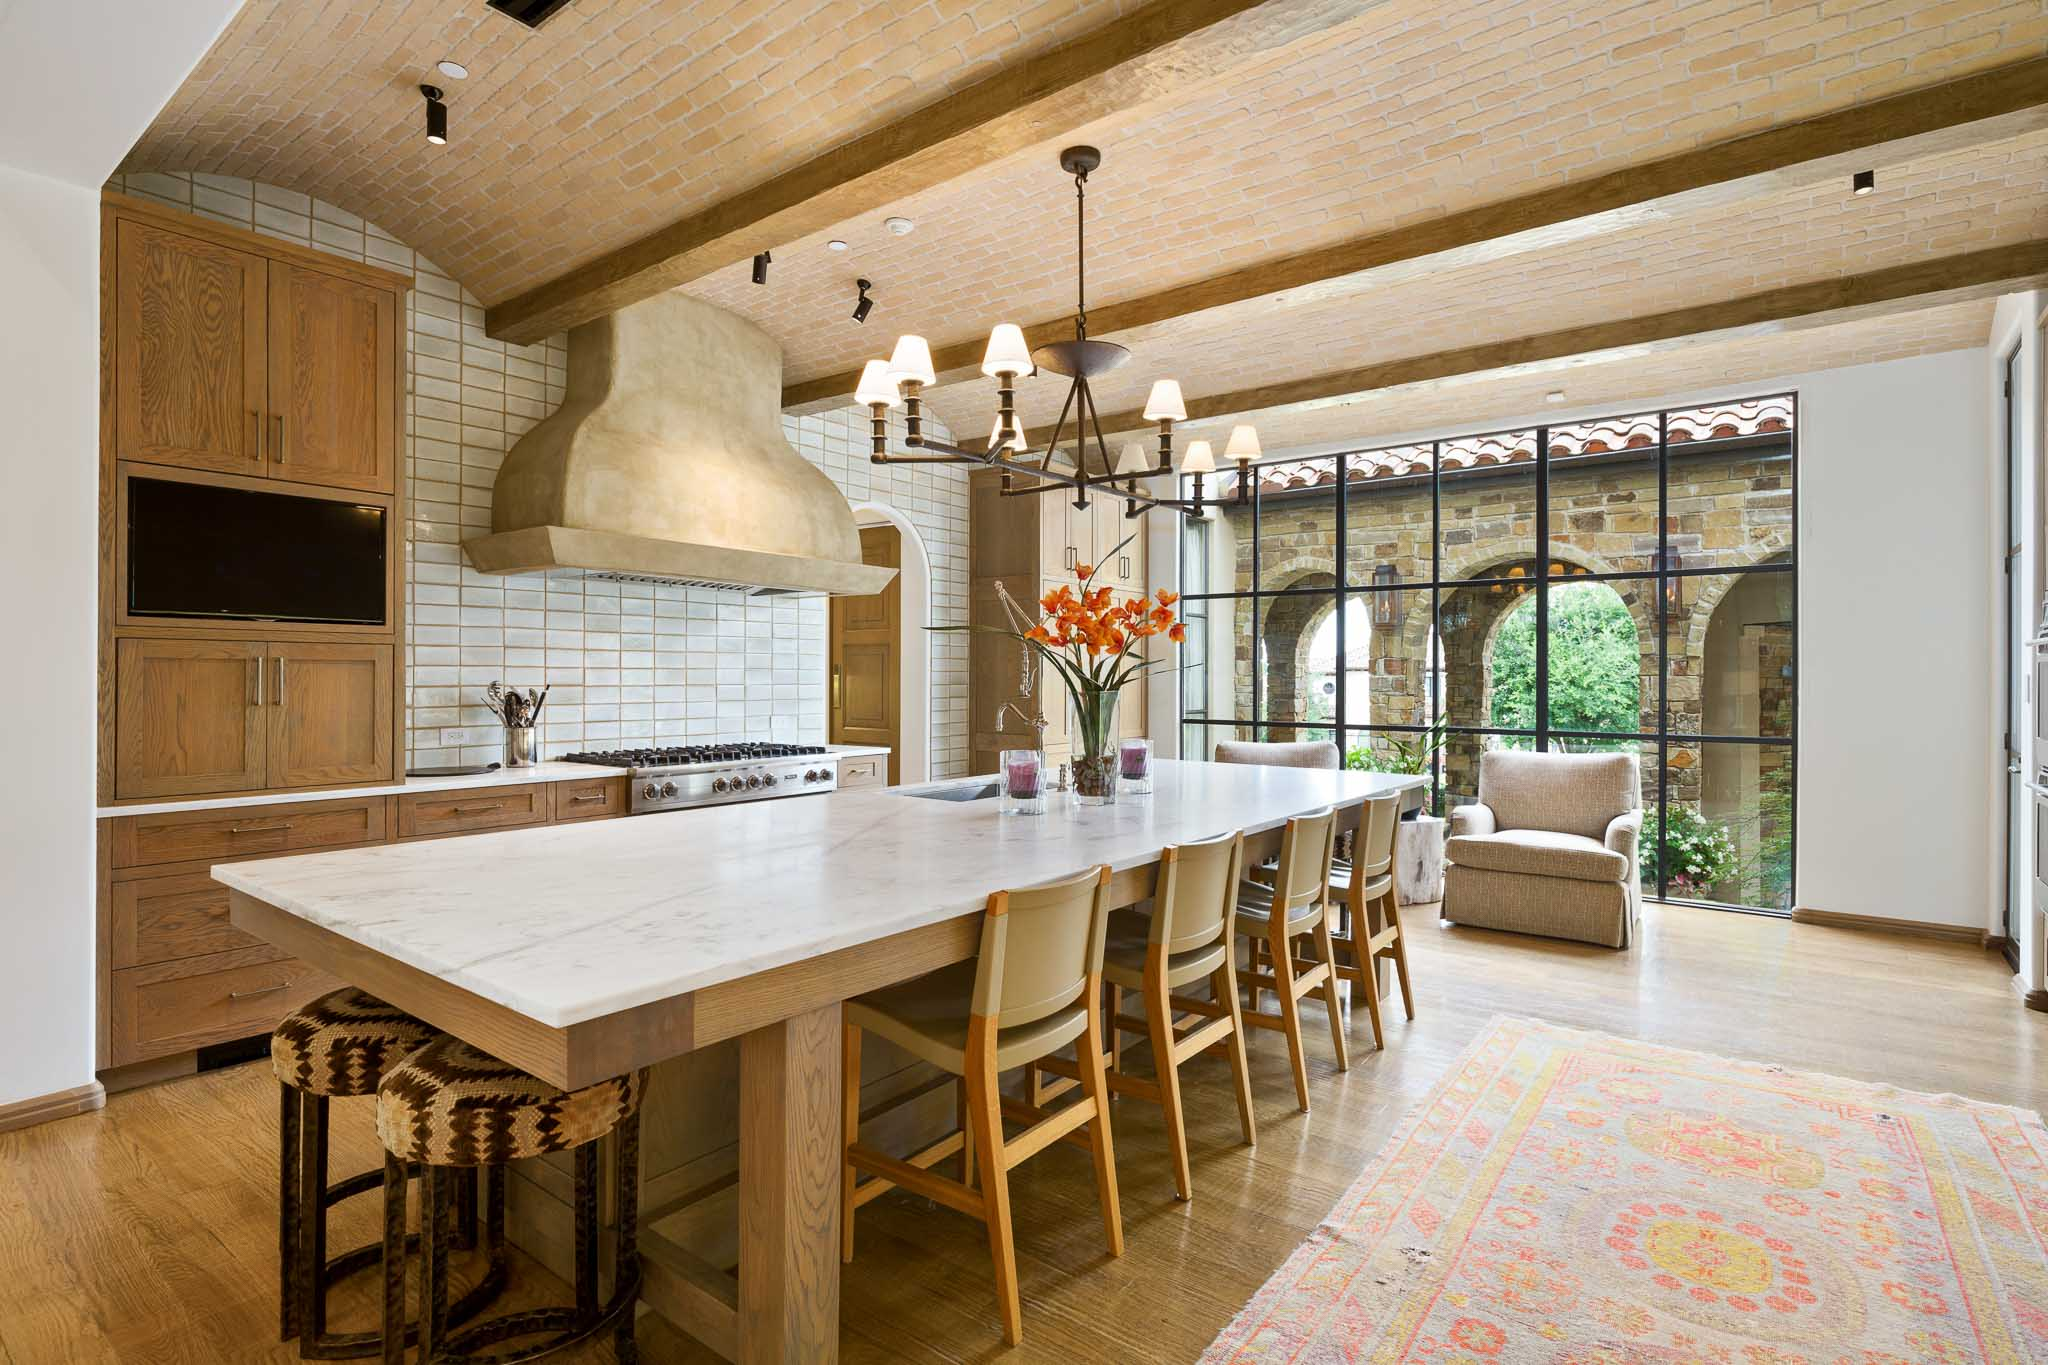 Spanish colonial style upscale kitchen